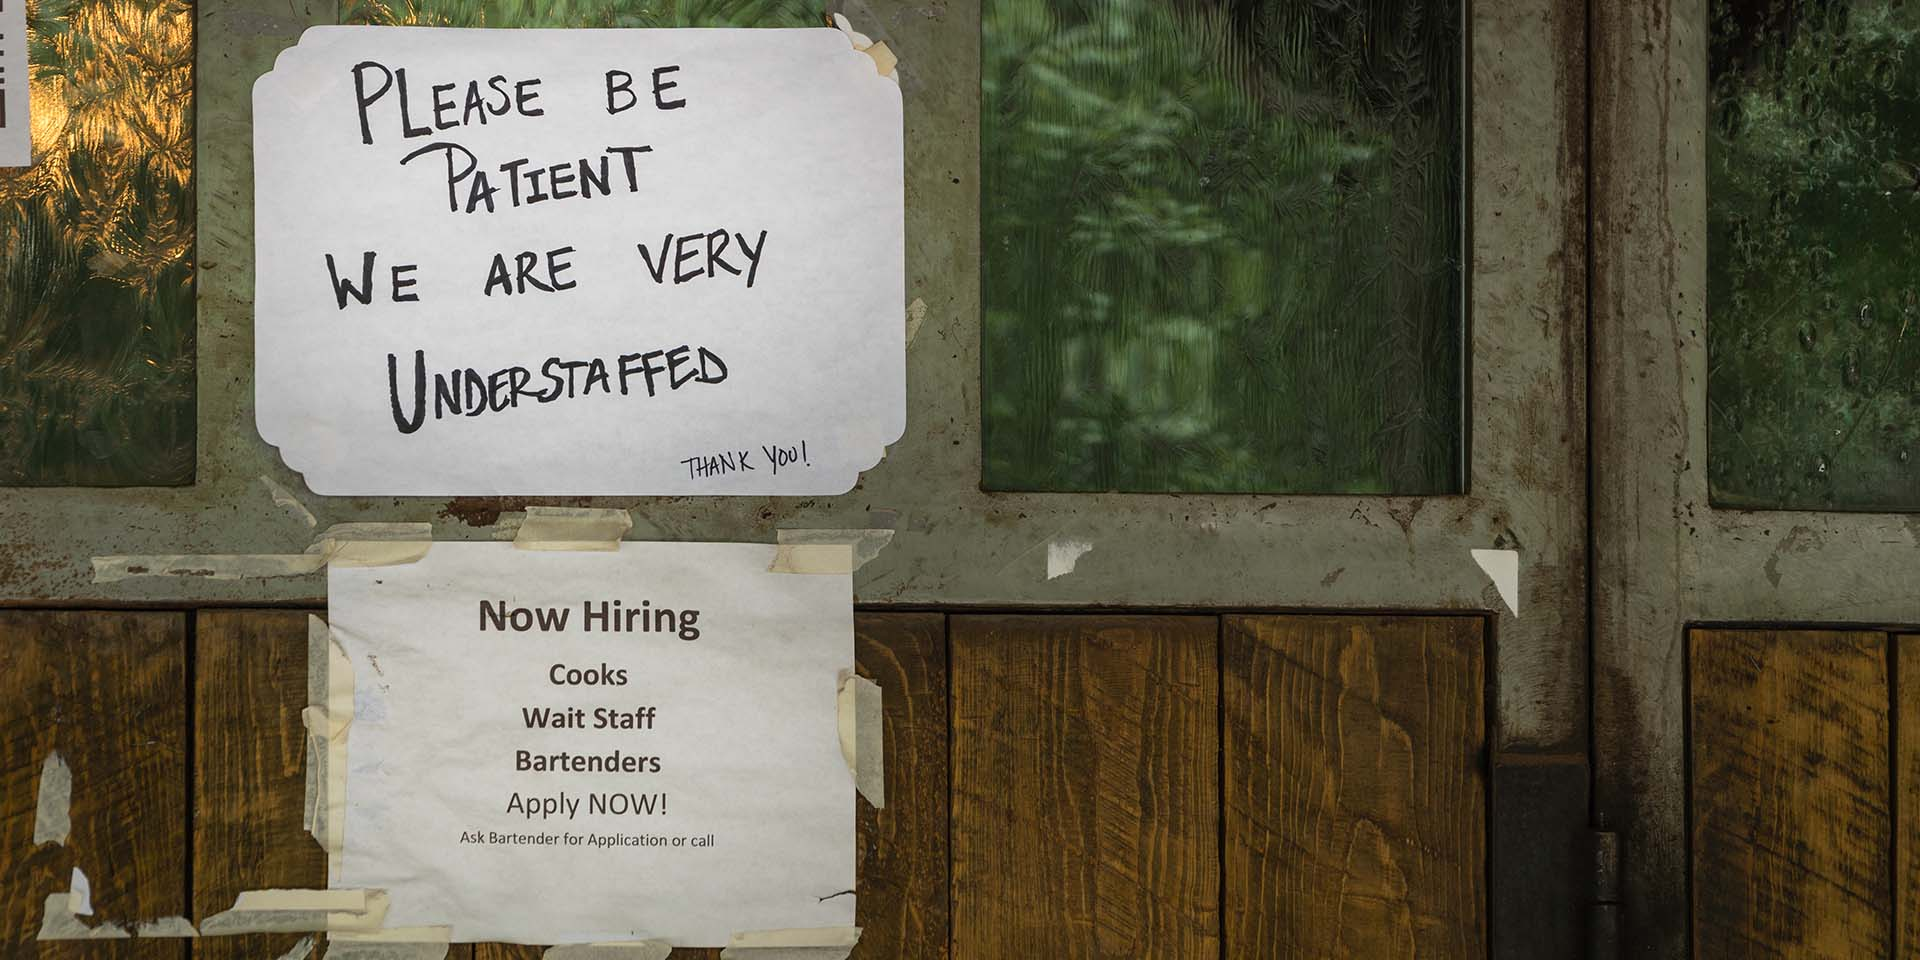 Facing staffing crisis, restaurants are vulnerable to preventable loss